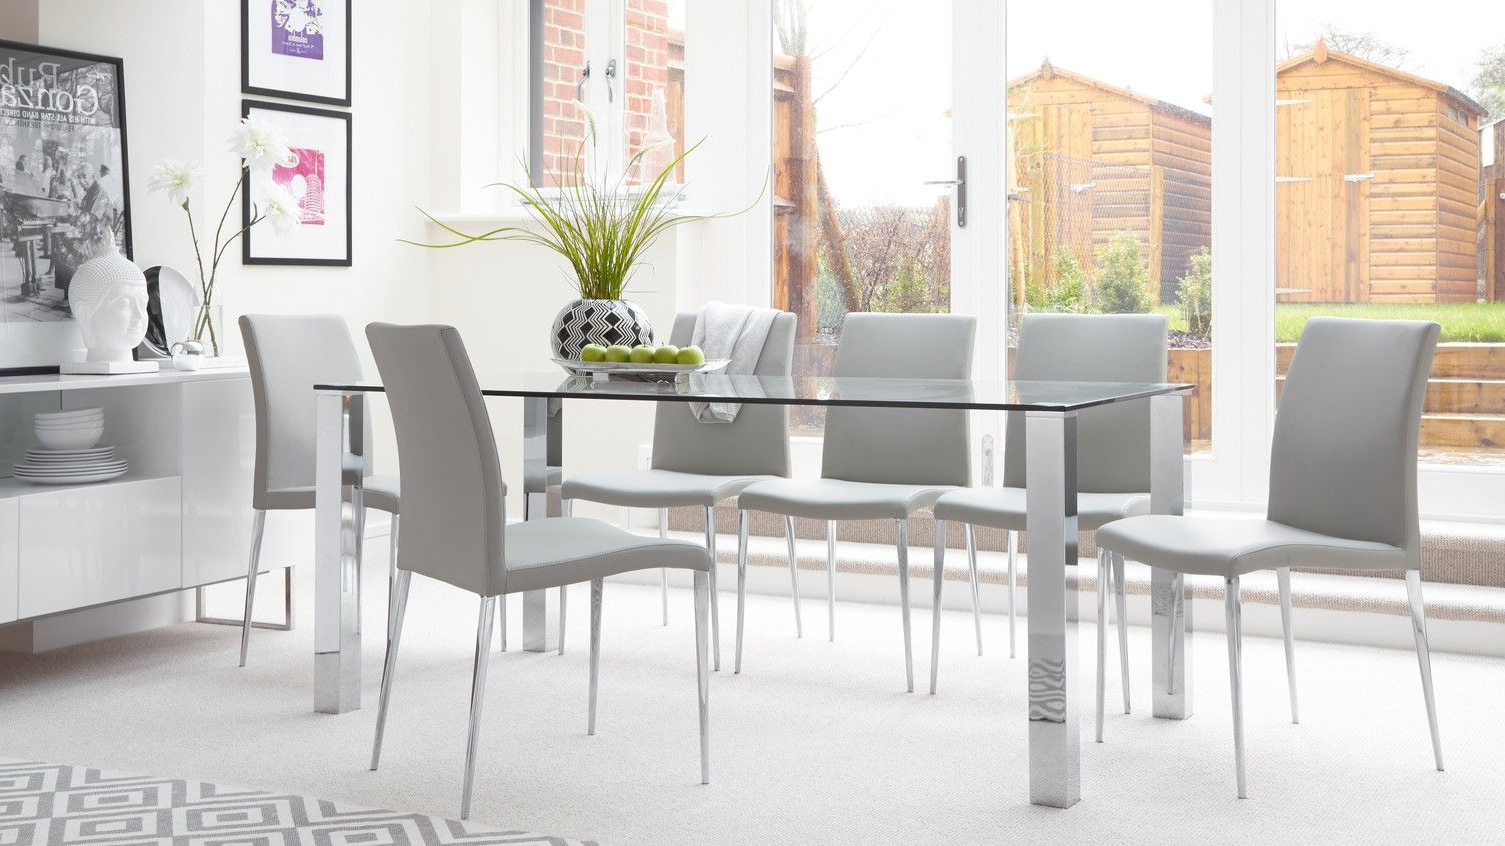 Glass Dining Table Throughout 2020 Contemporary 4 Seating Oblong Dining Tables (View 7 of 25)